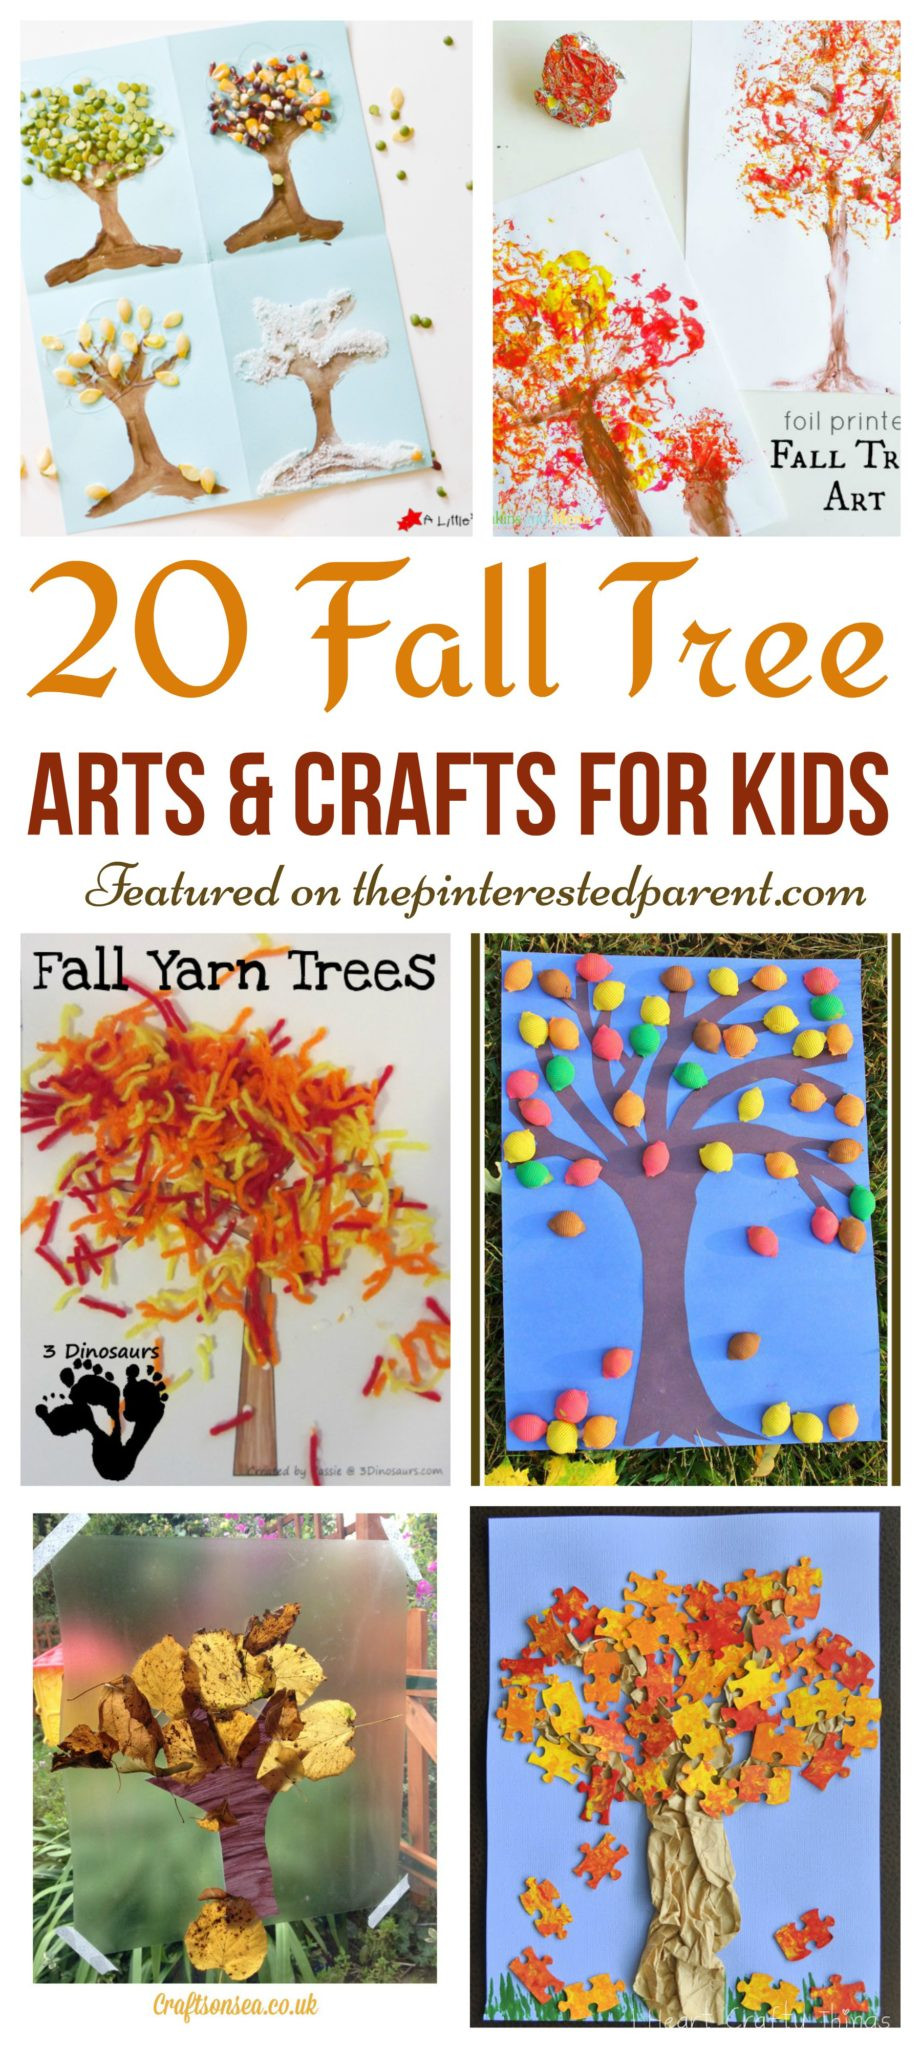 Fall Art Projects For Kids  20 Fall Tree Arts & Crafts Ideas For Kids – The